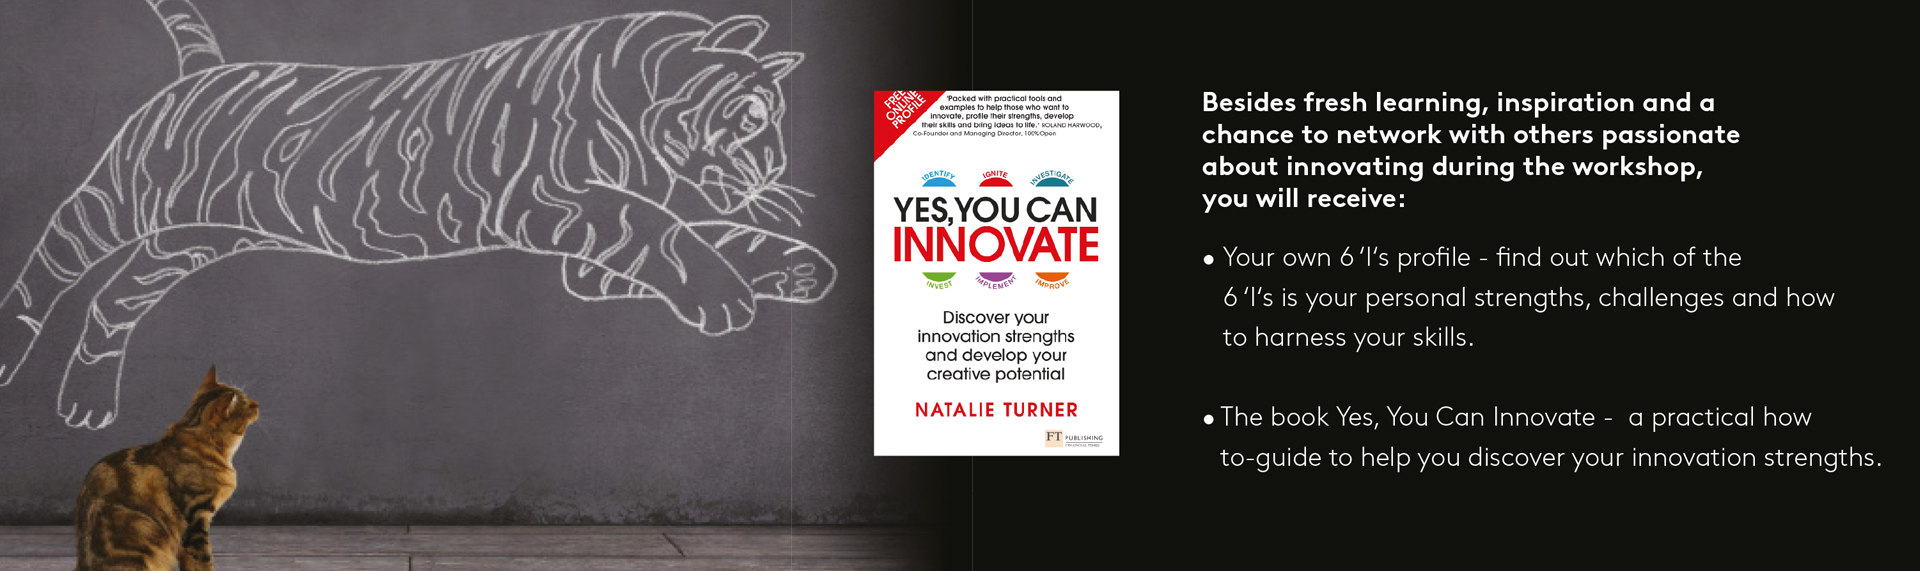 Yes You Can Innovate